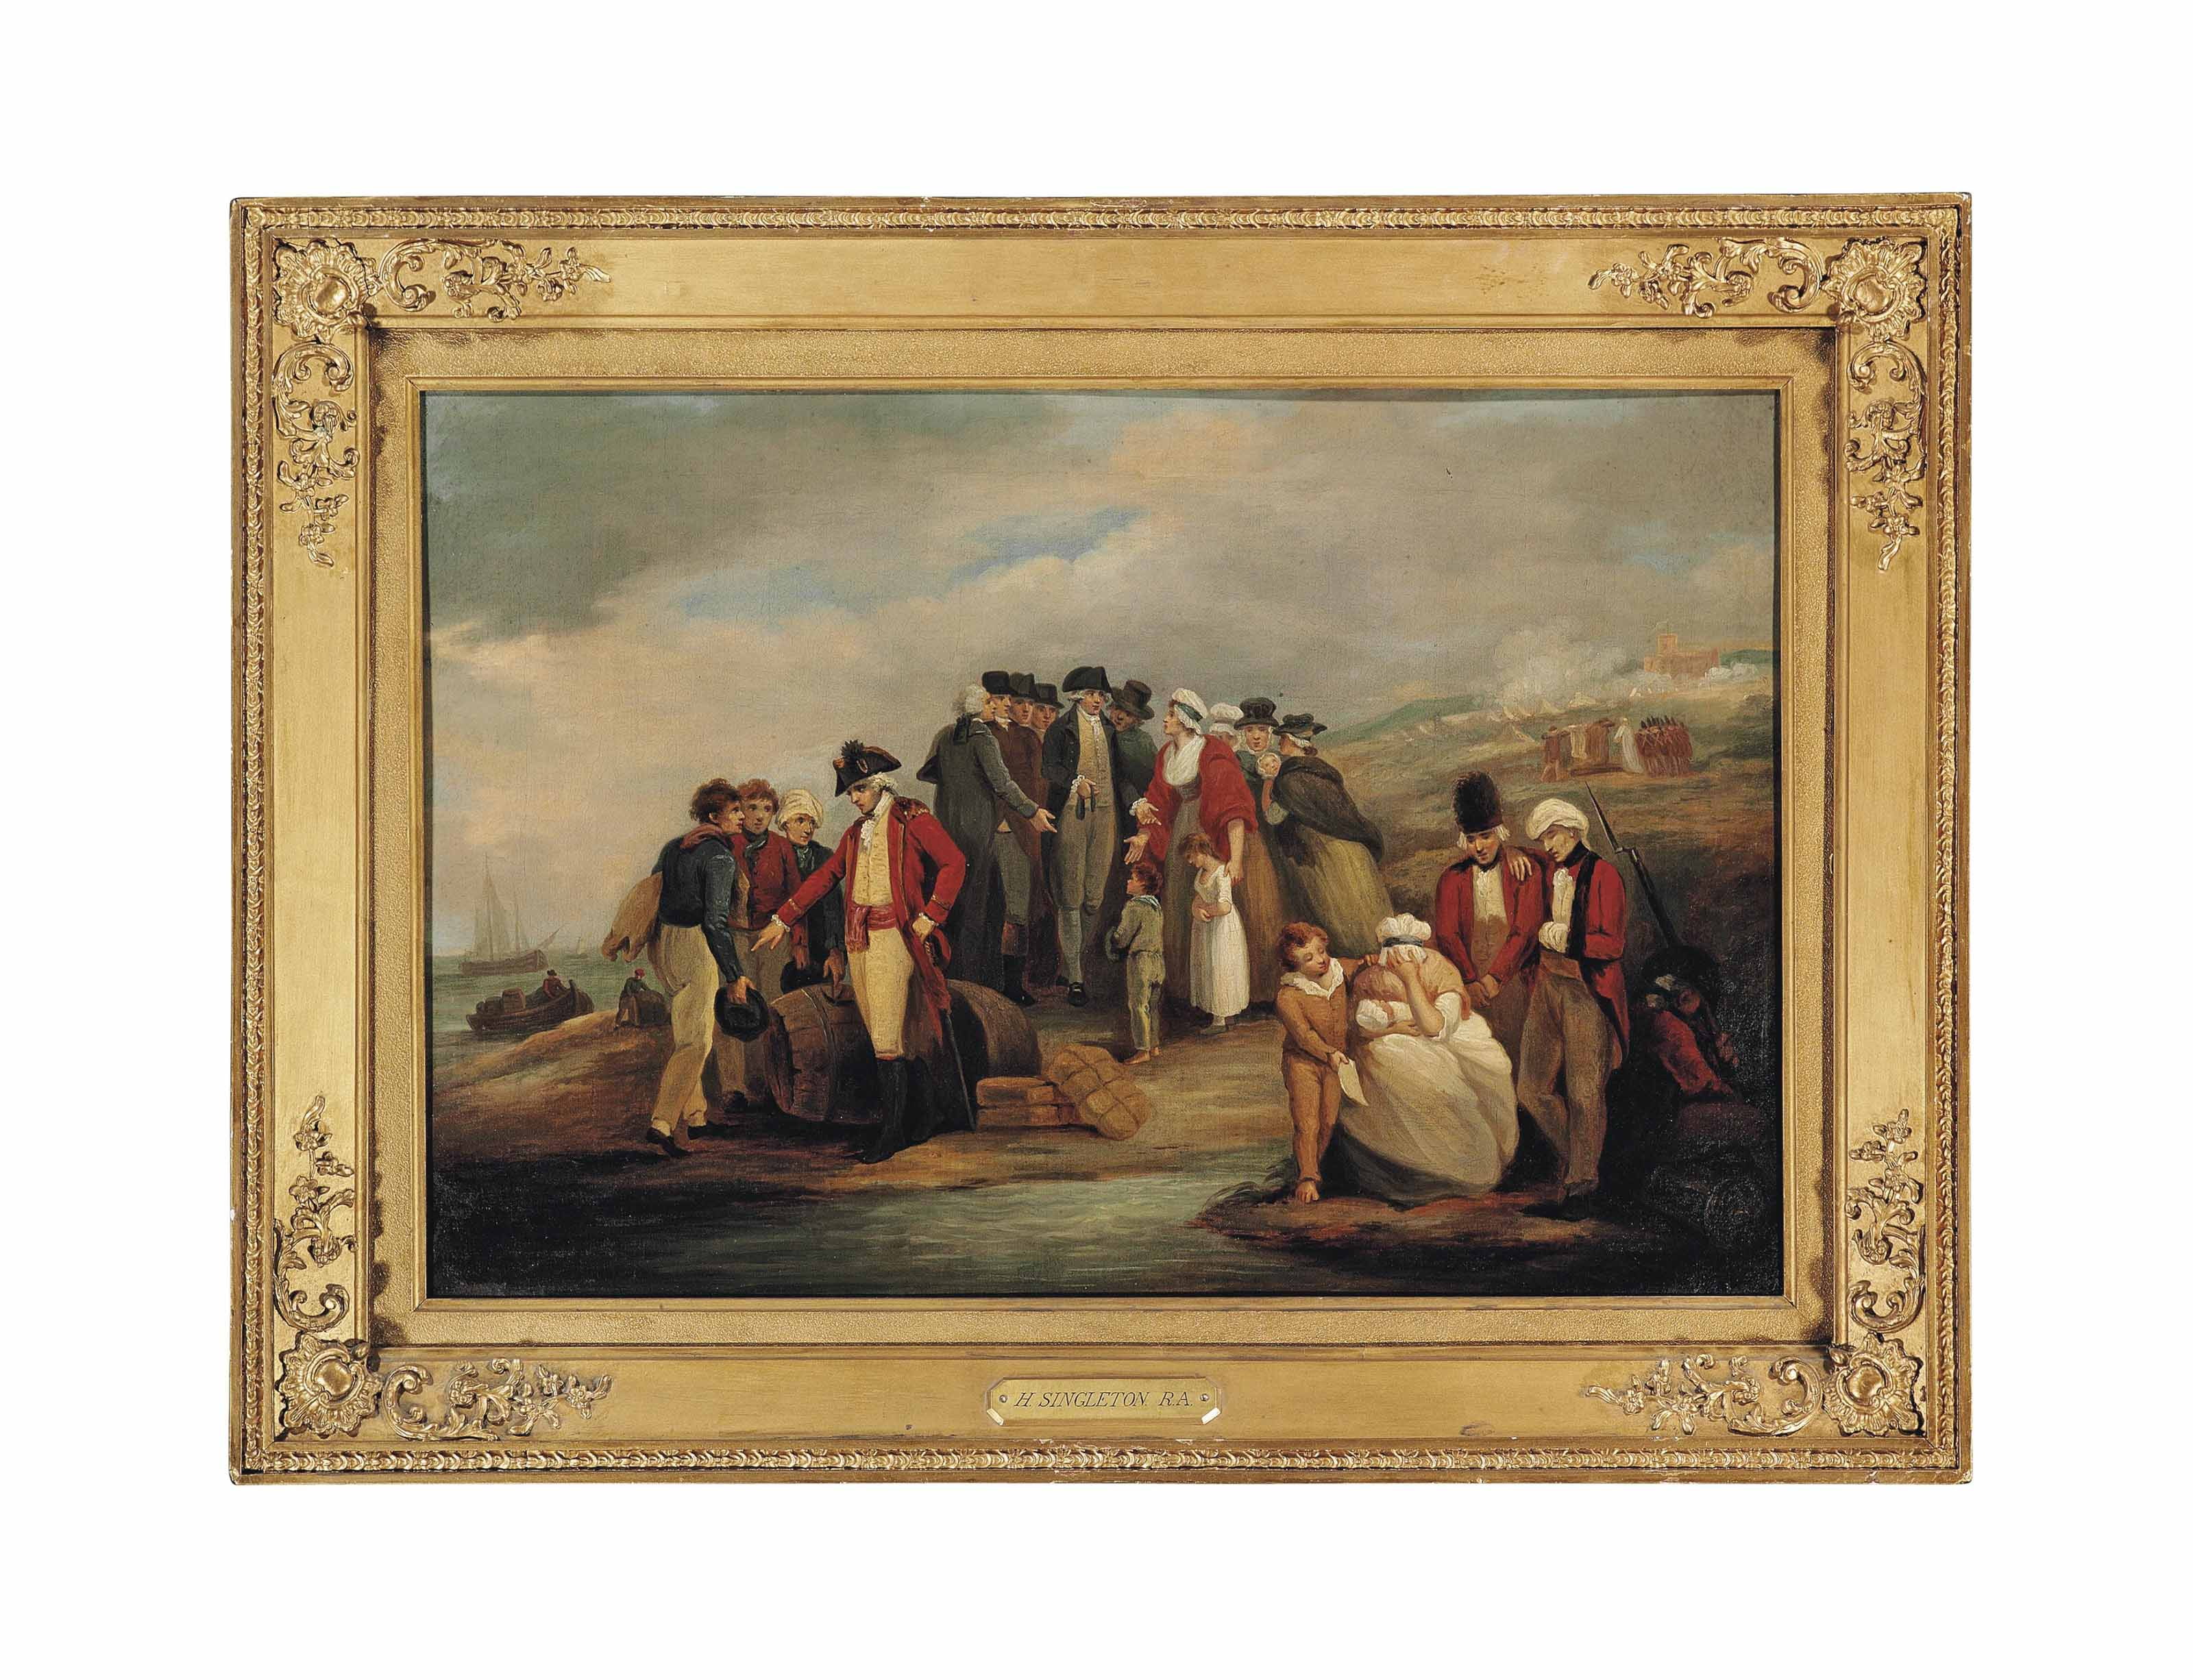 Infantry officers and elegantly-dressed gentlemen with women and children on a beach, other figures loading boats on the shore, a battle by a fort beyond